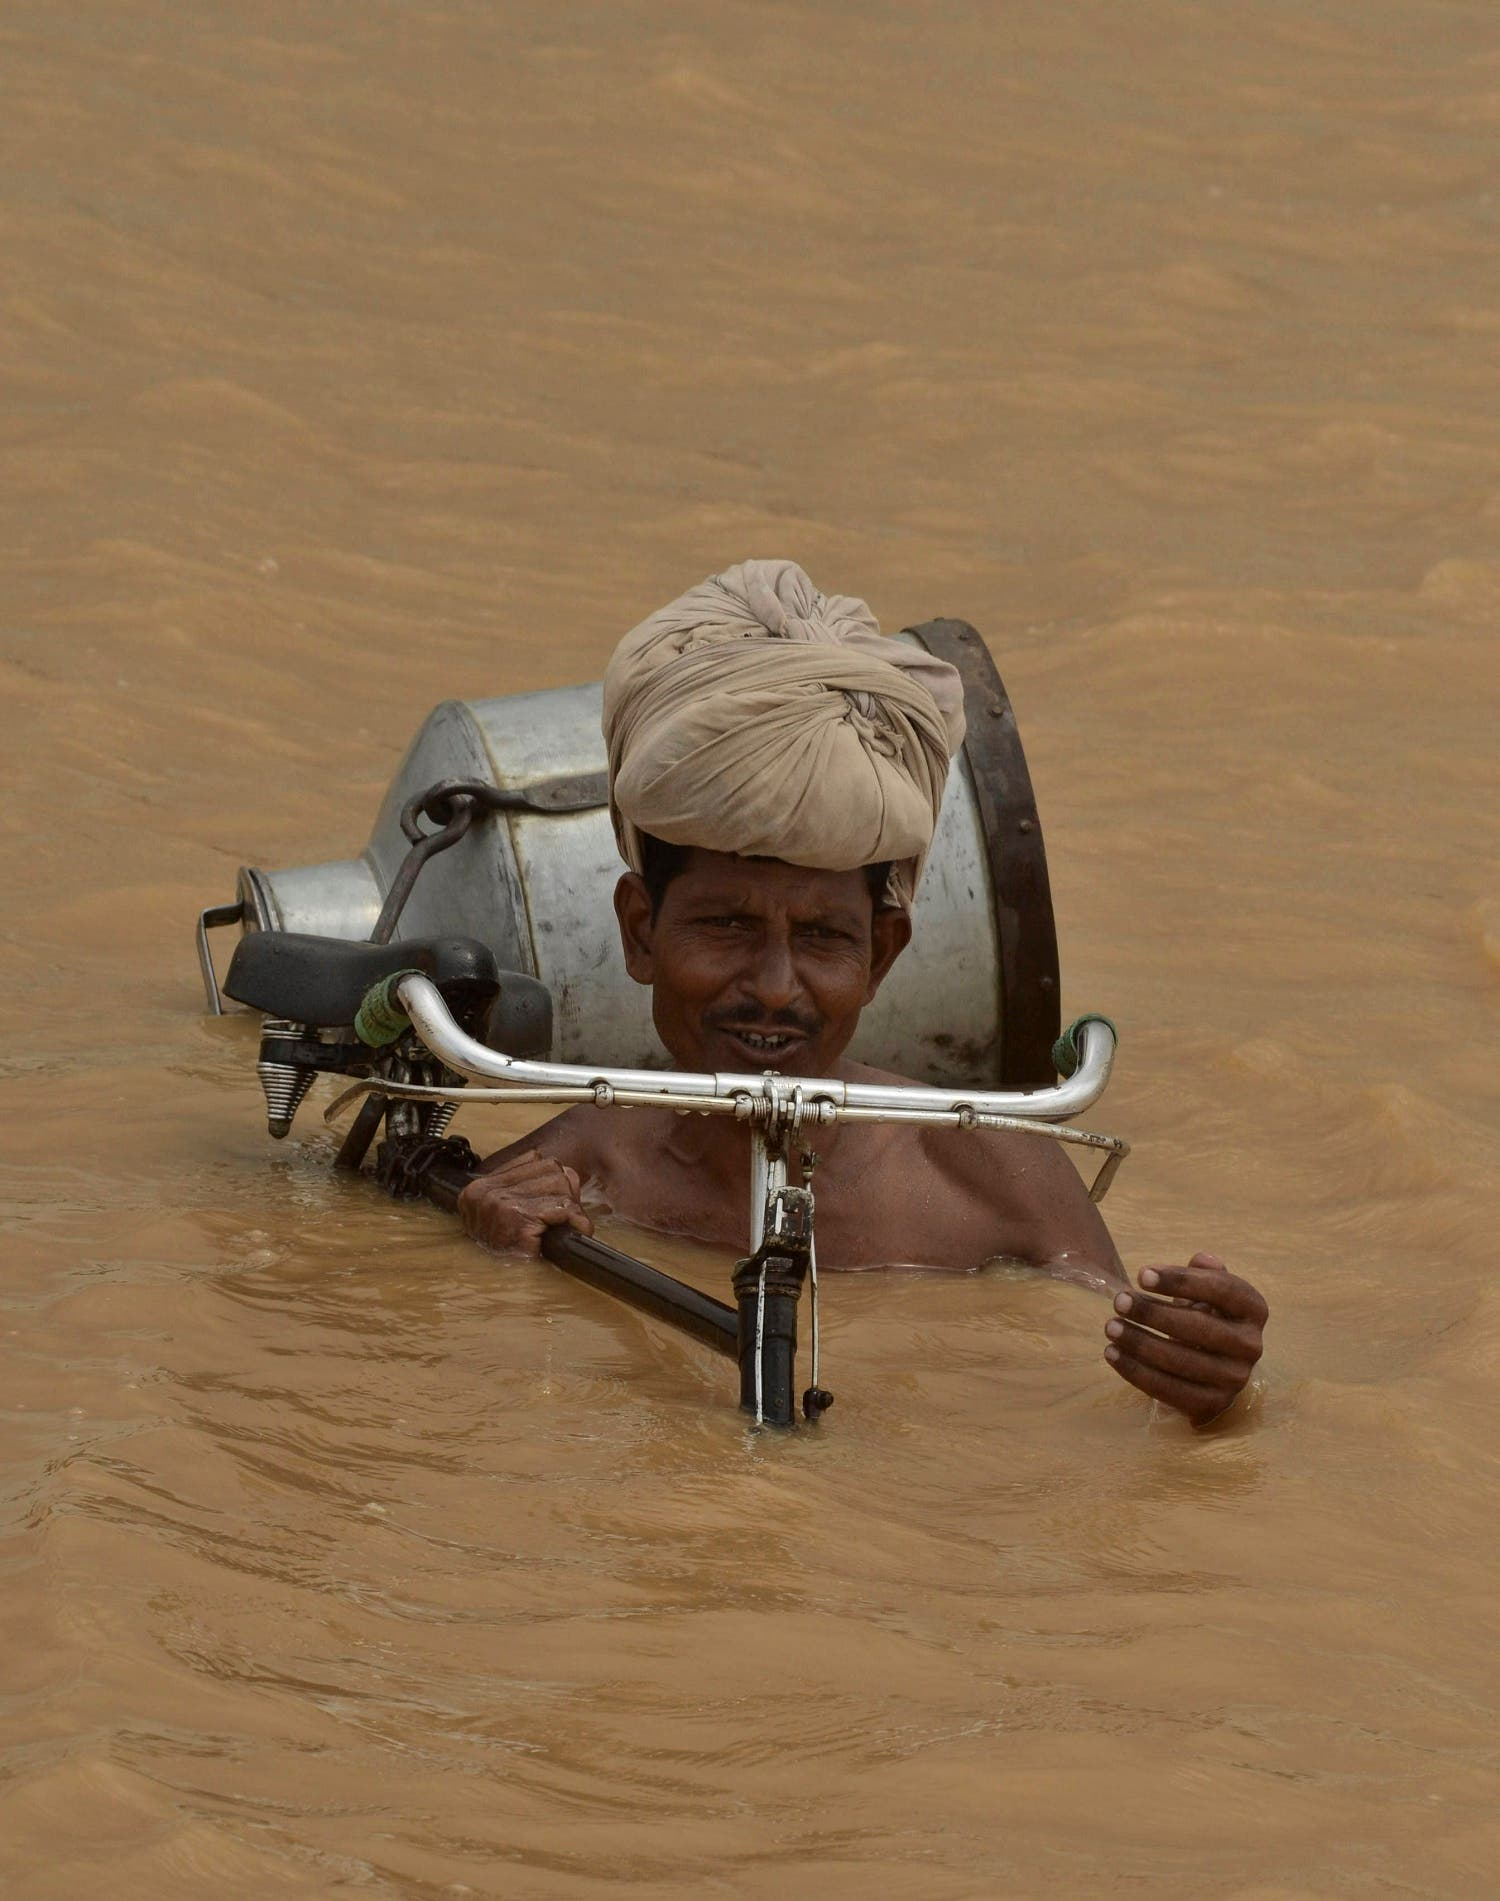 An Indian villager with his bicycle wades through floodwaters at Maner block in Patna district India, on July 31, 2013. (AP)